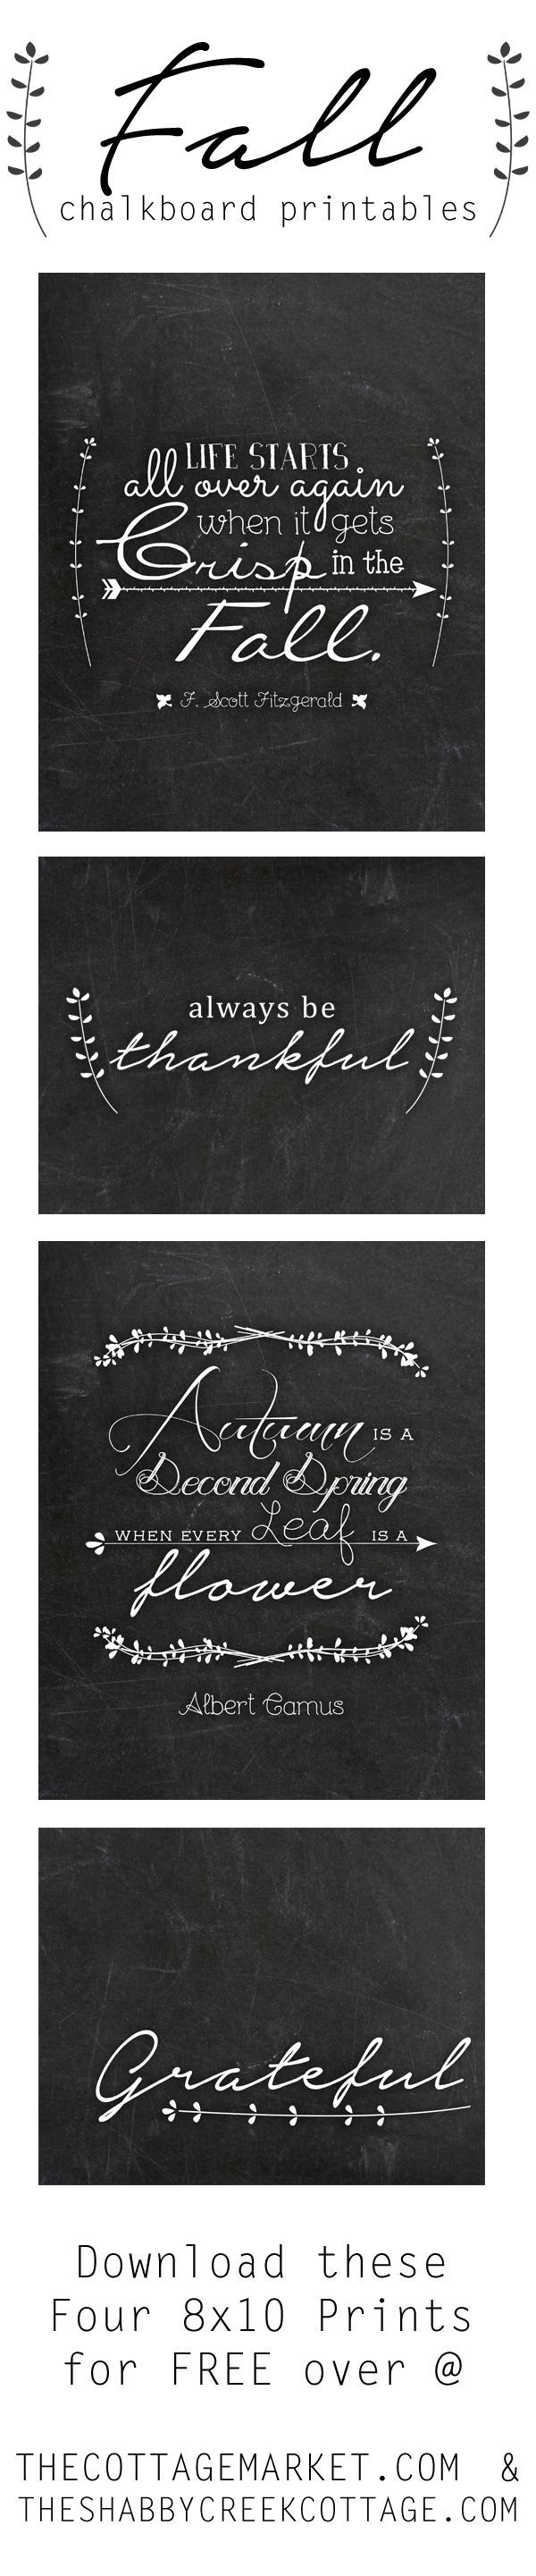 A beautiful set of FREE fall chalkboard printables - perfect for decorating and so much more! Unlimited free personal use!